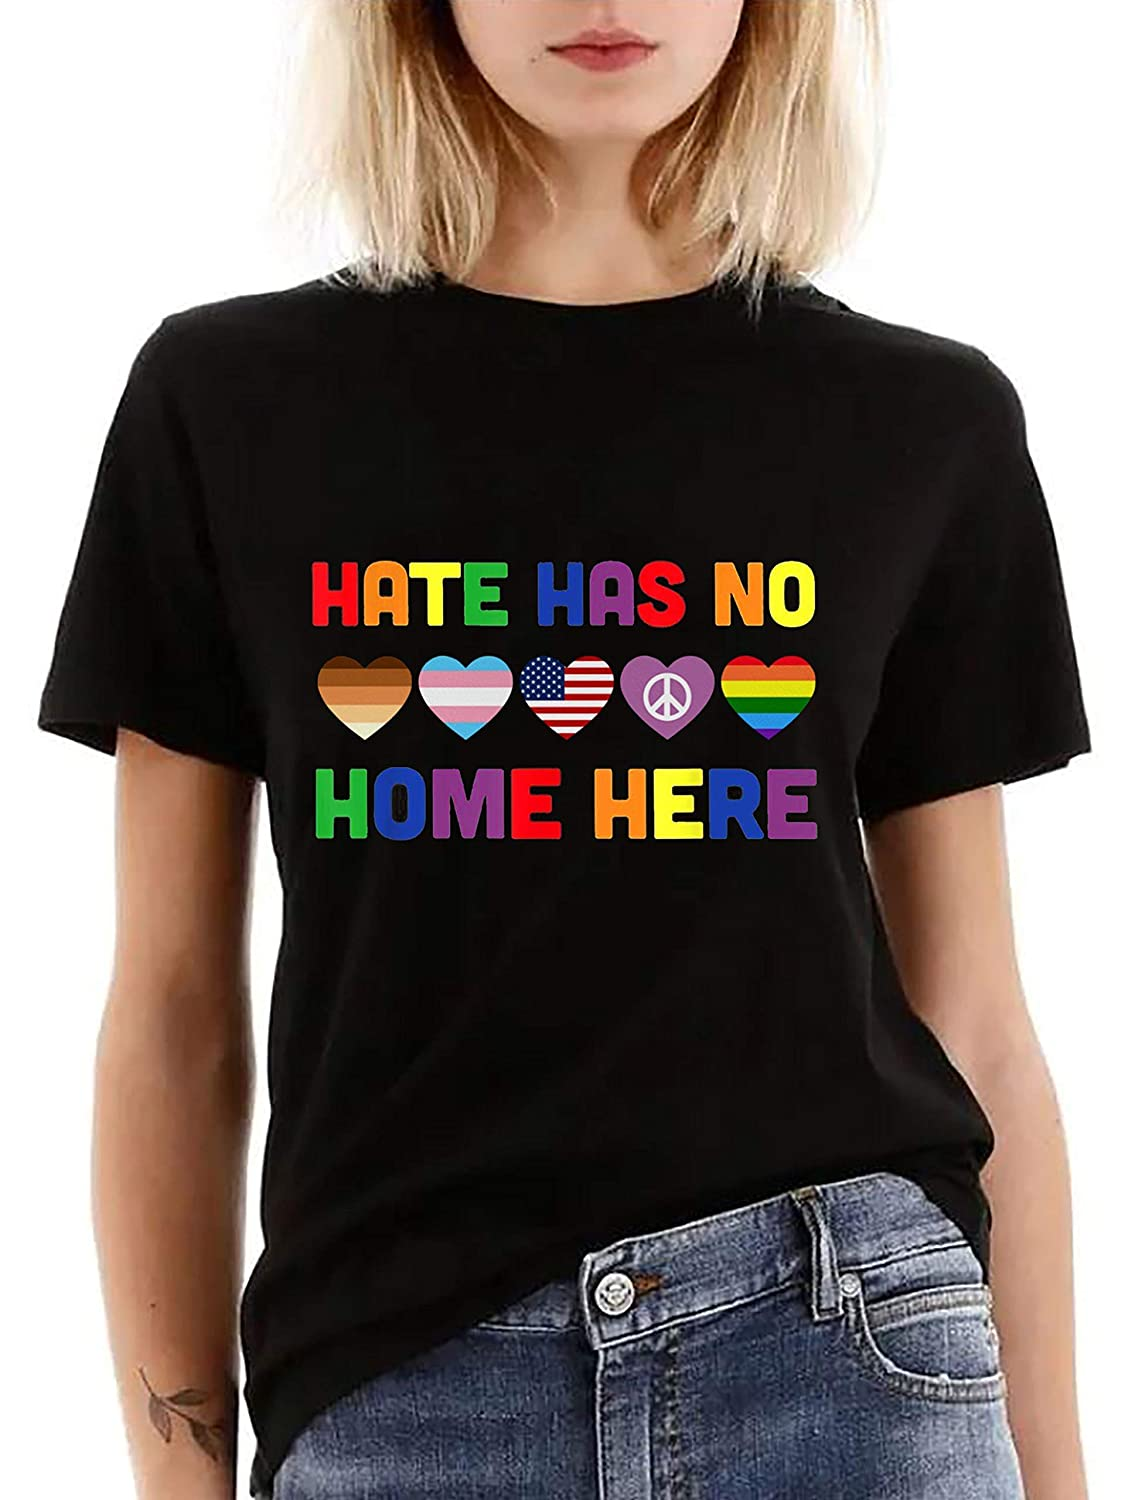 Hate Has No Home Here T-shirt/Long Sleeve Shirt/Sweatshirt/Hoodie for LGBT Valentine's Day Gift